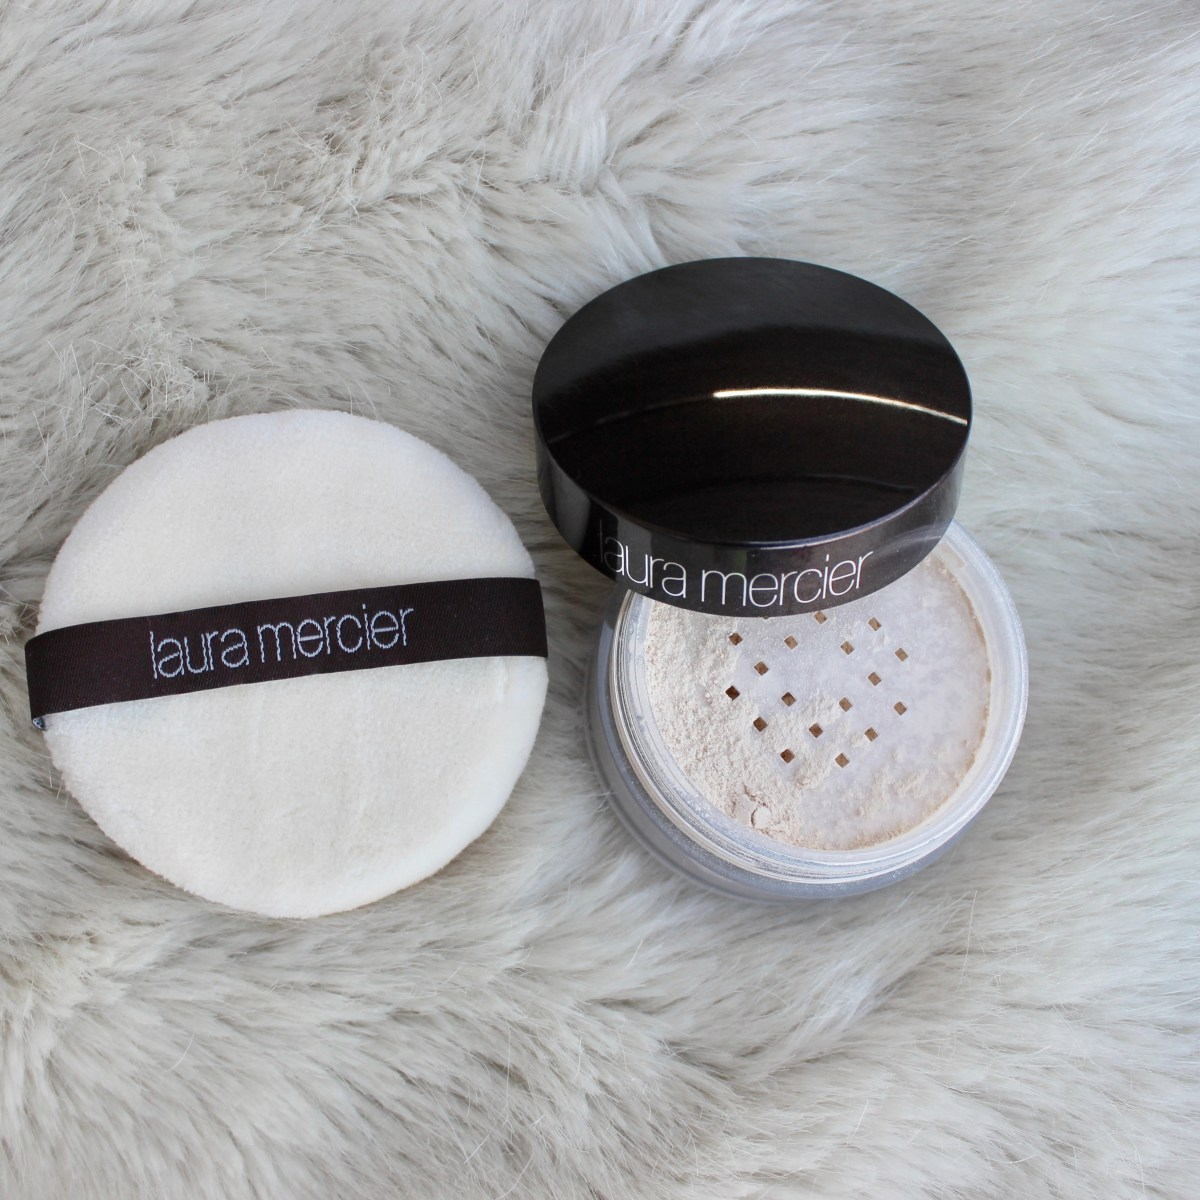 Product Review: Laura Mercier Translucent Loose Setting Powder